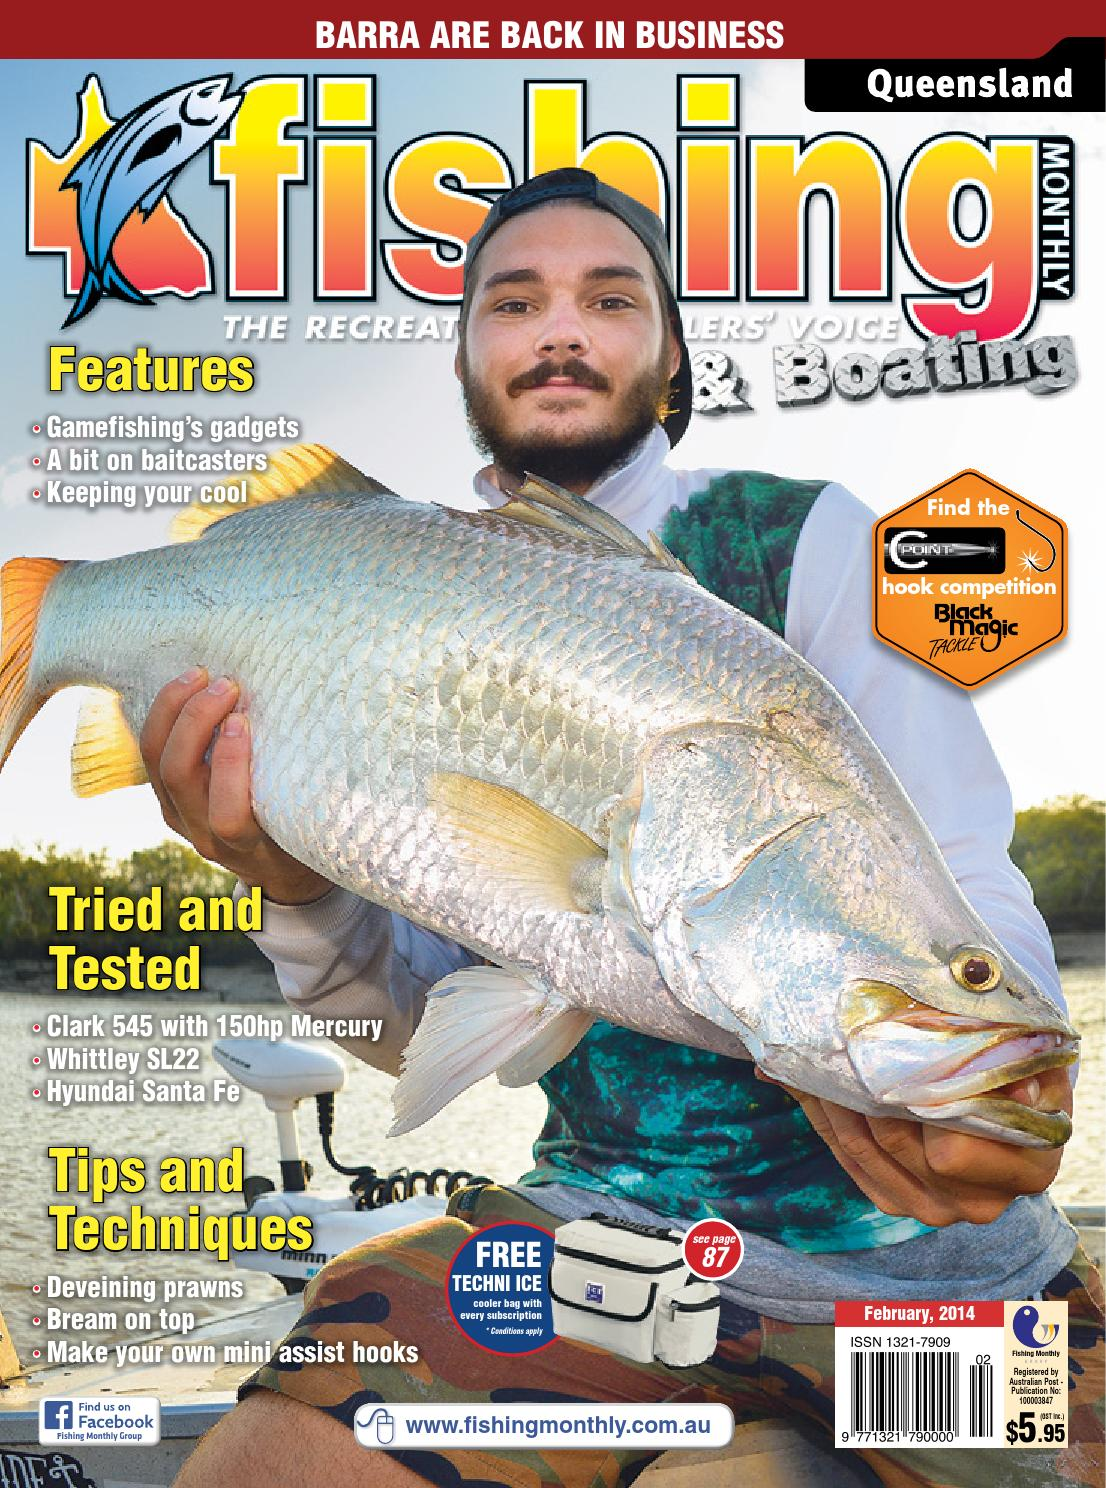 Queensland Fishing Monthly - February 2014 by Fishing